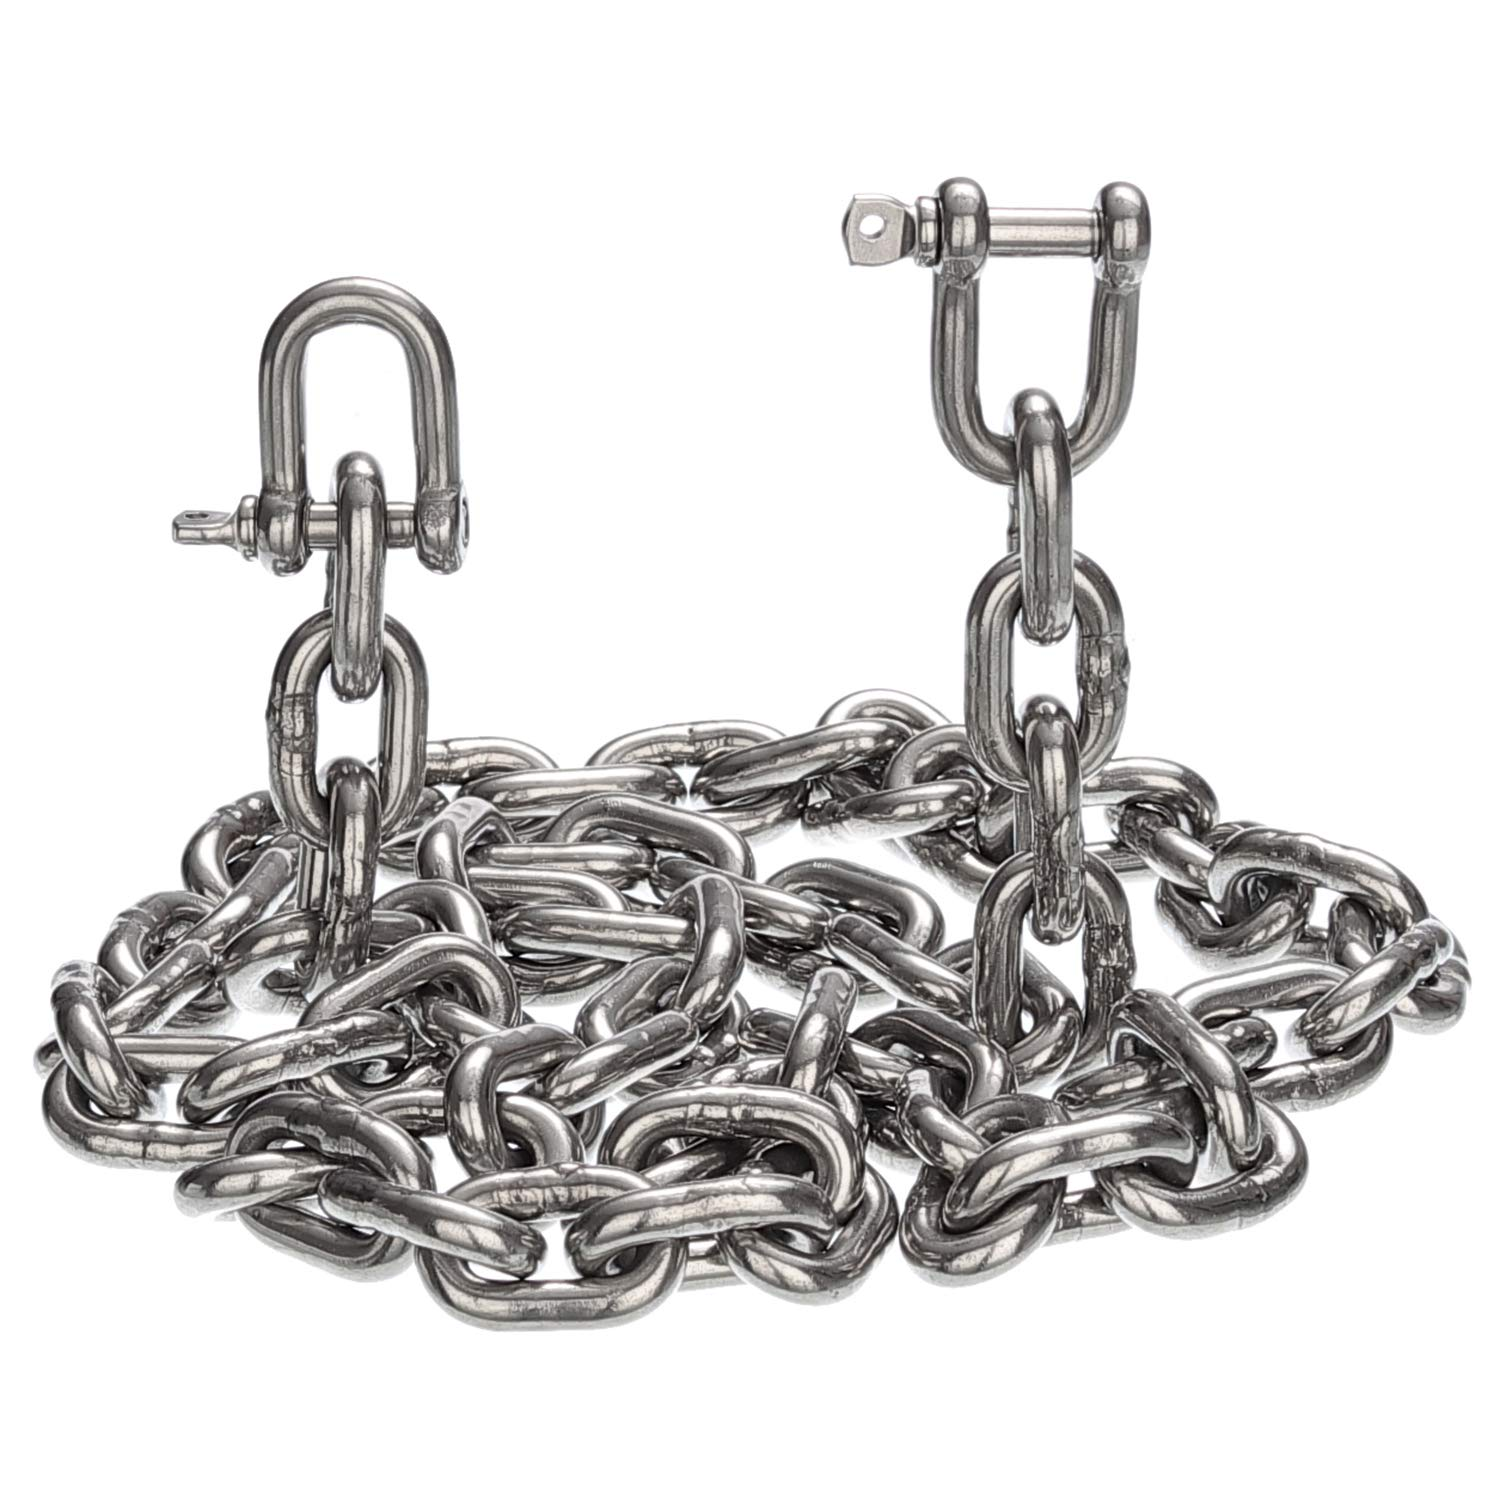 5//16 by 5 Stainless Steel 316 Anchor Chain 5//16 or 8mm by 5 Foot Long with 2 Shackles